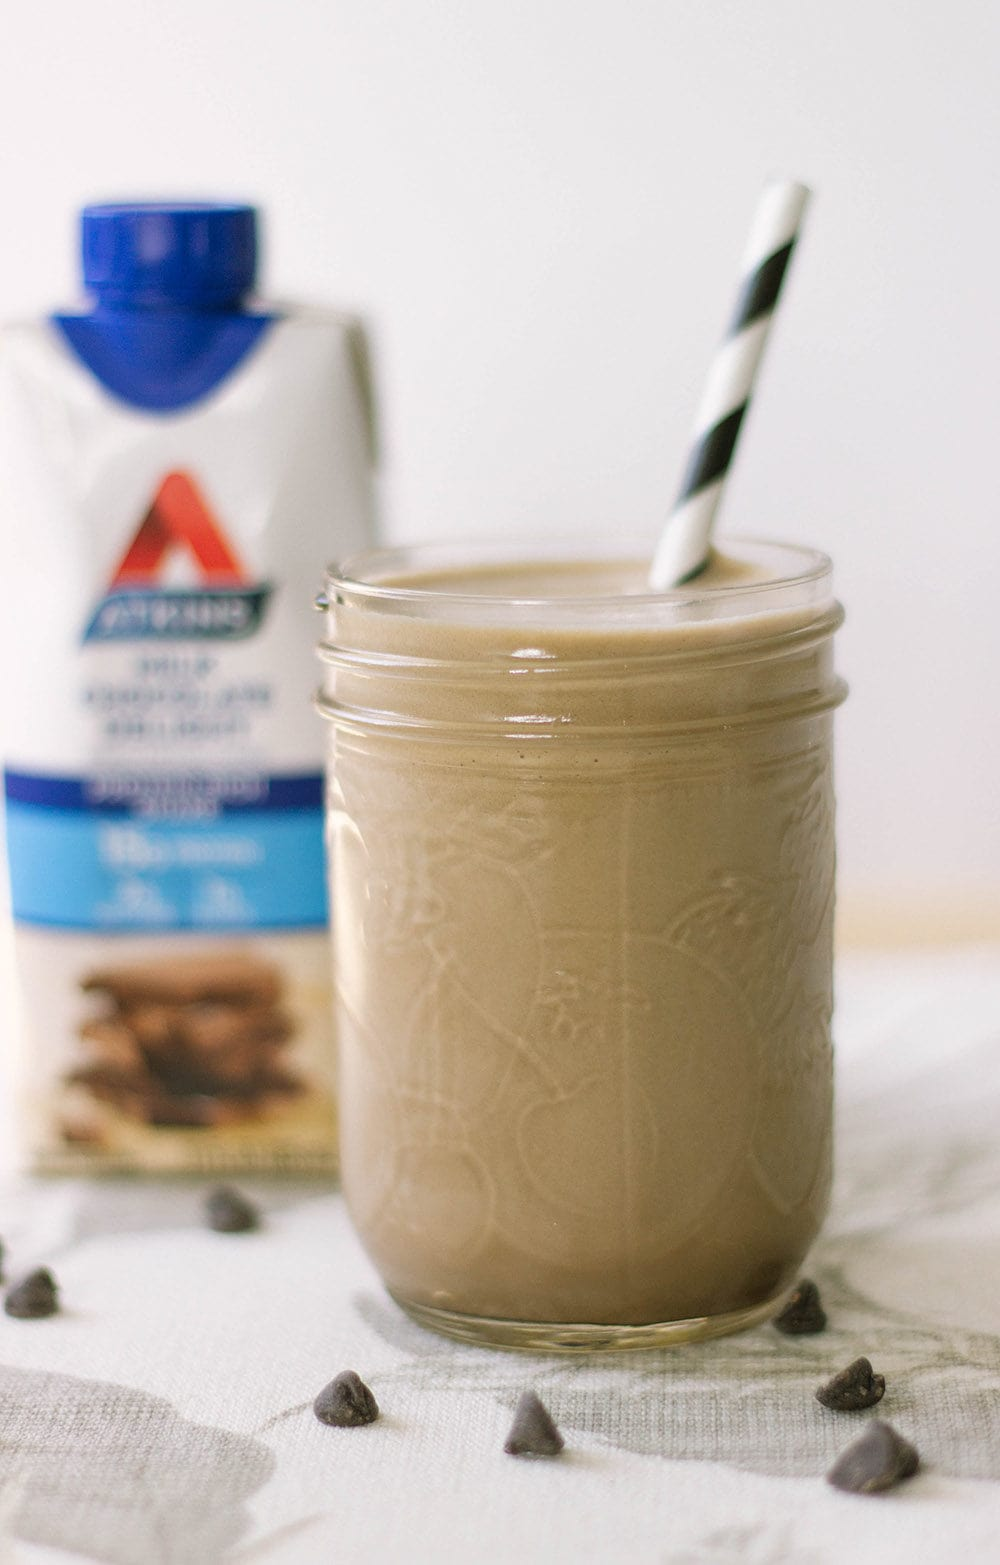 Chocolate Atkins shake in a jar